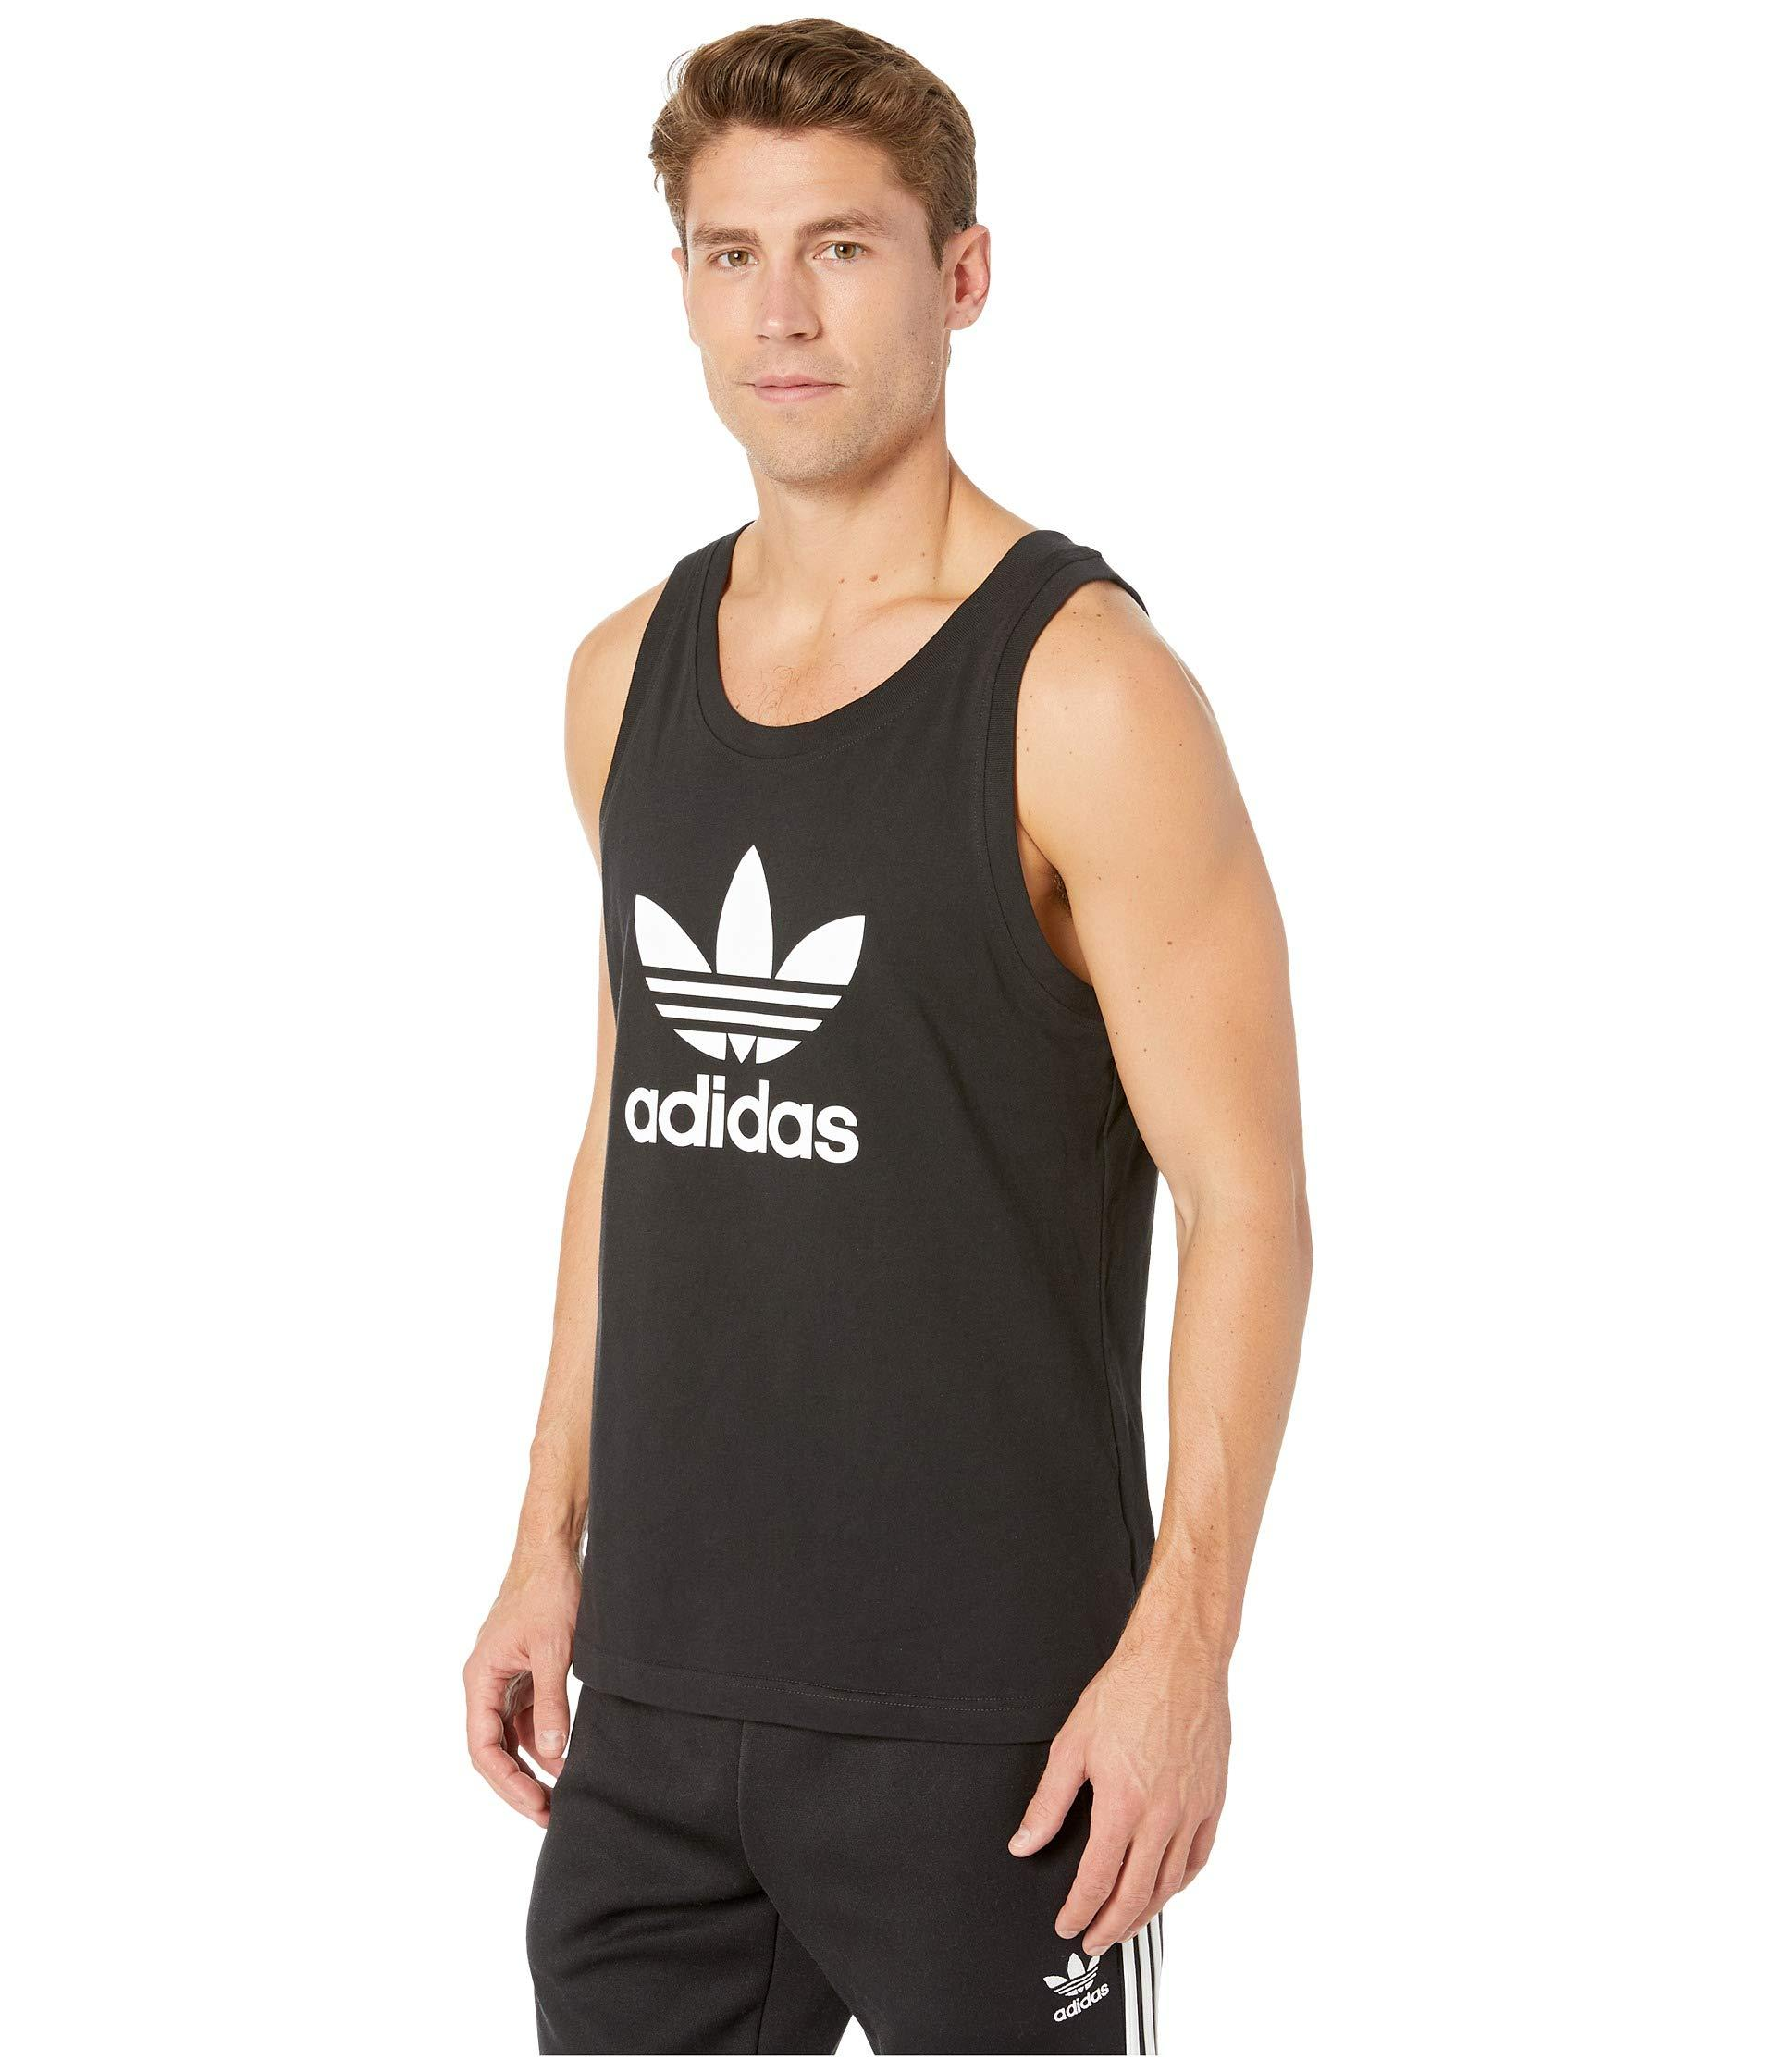 689447540110c0 Lyst - adidas Originals Trefoil Tank Top (white) Men s Sleeveless in Black  for Men